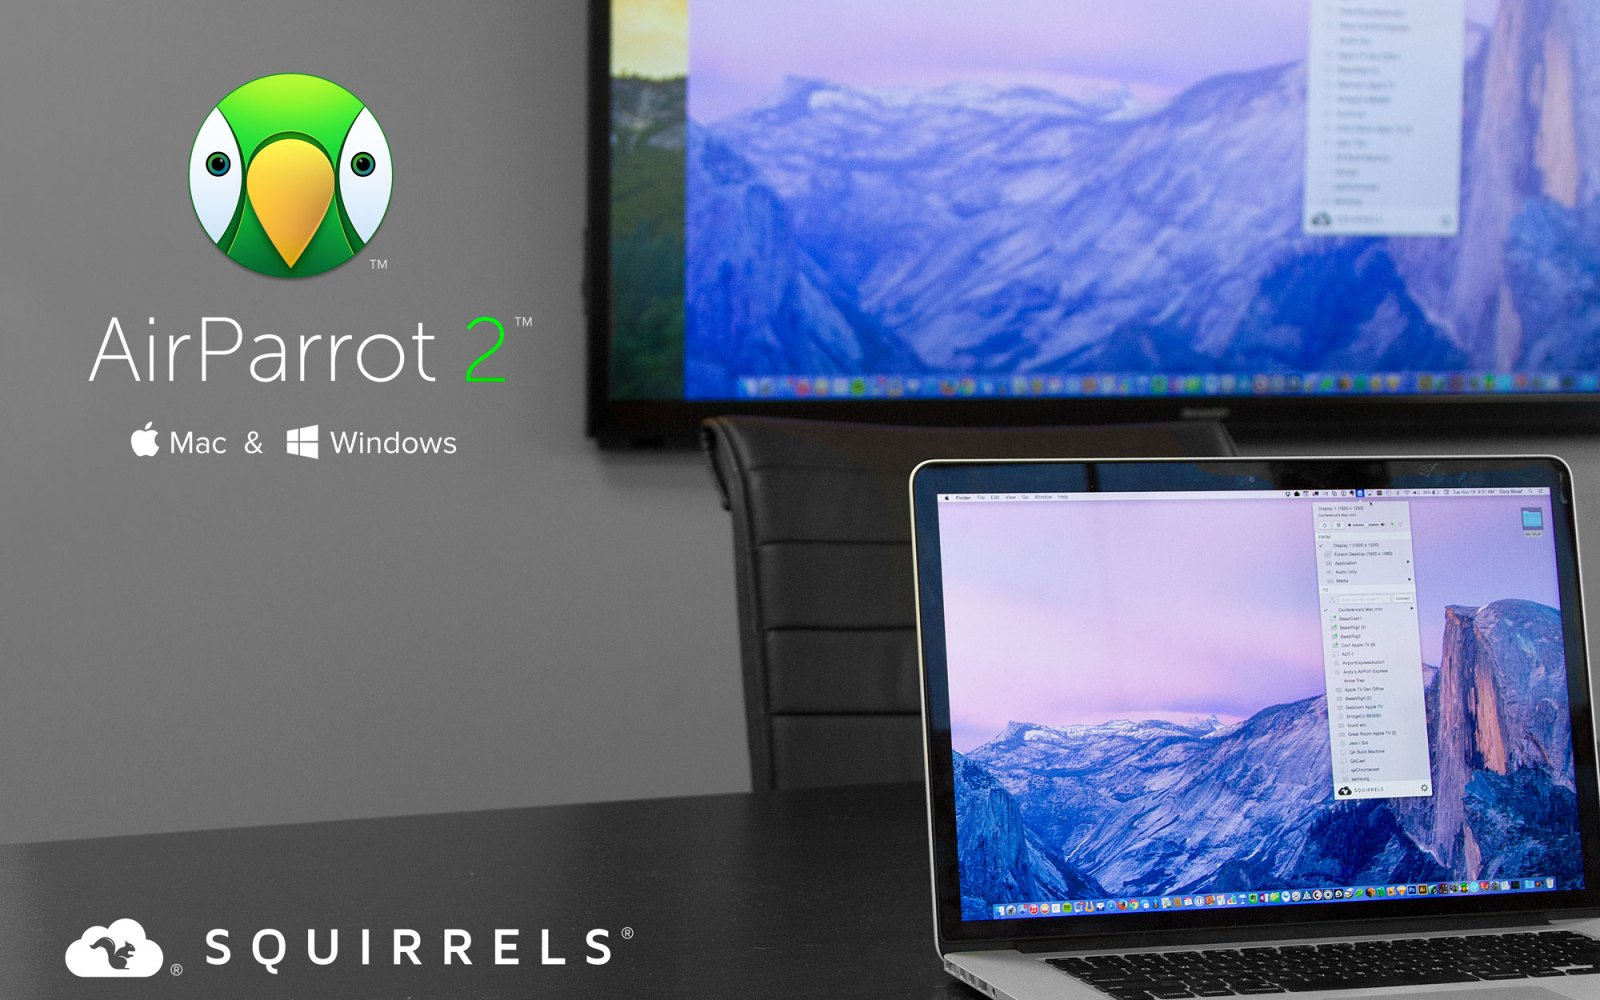 AirParrot 2 brings Mac & Windows screen mirroring to Chromecast, drag and drop media streaming